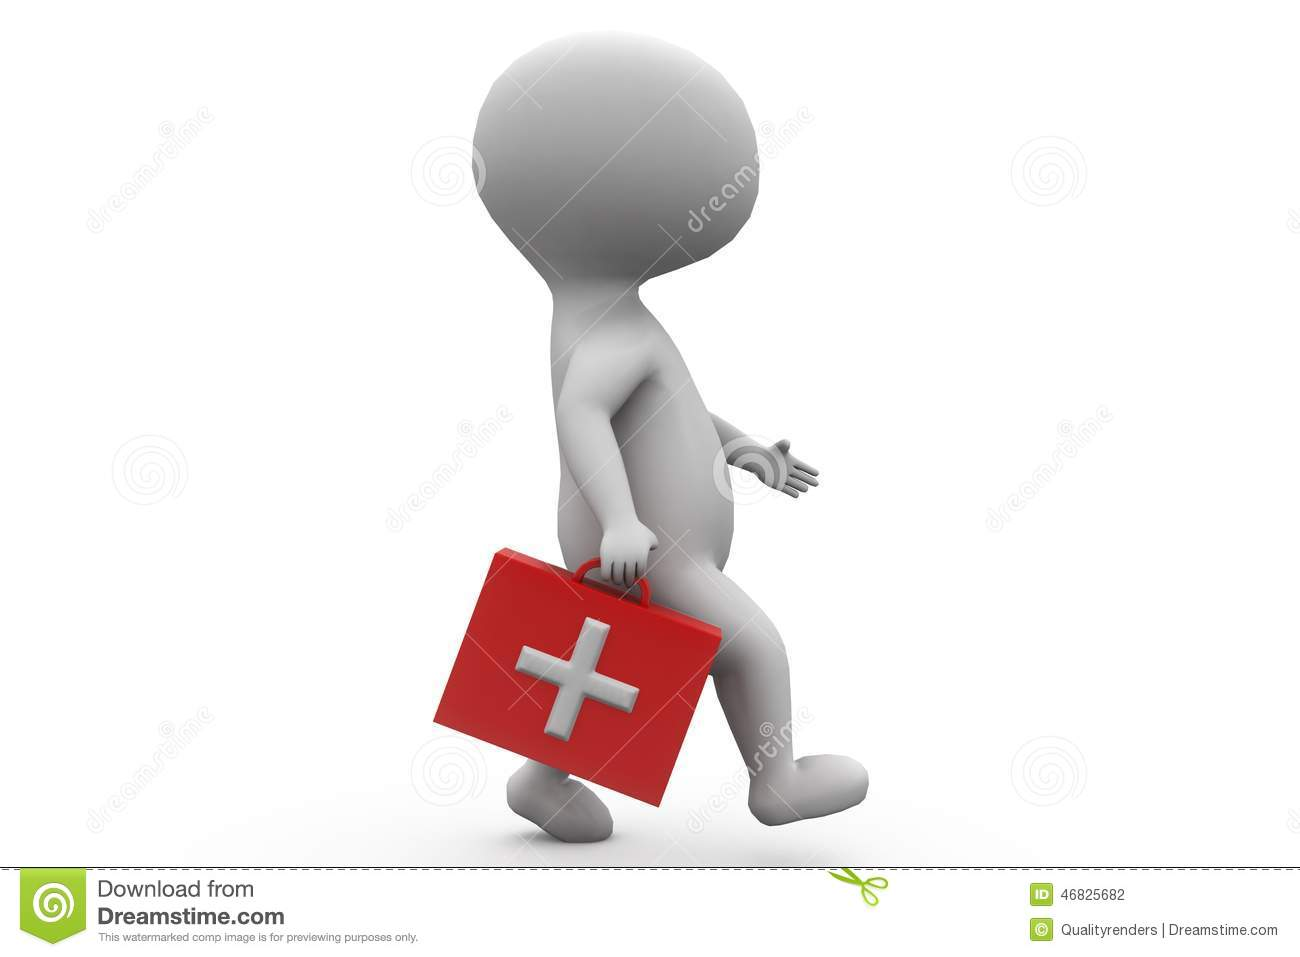 Concept: First Aid Kit